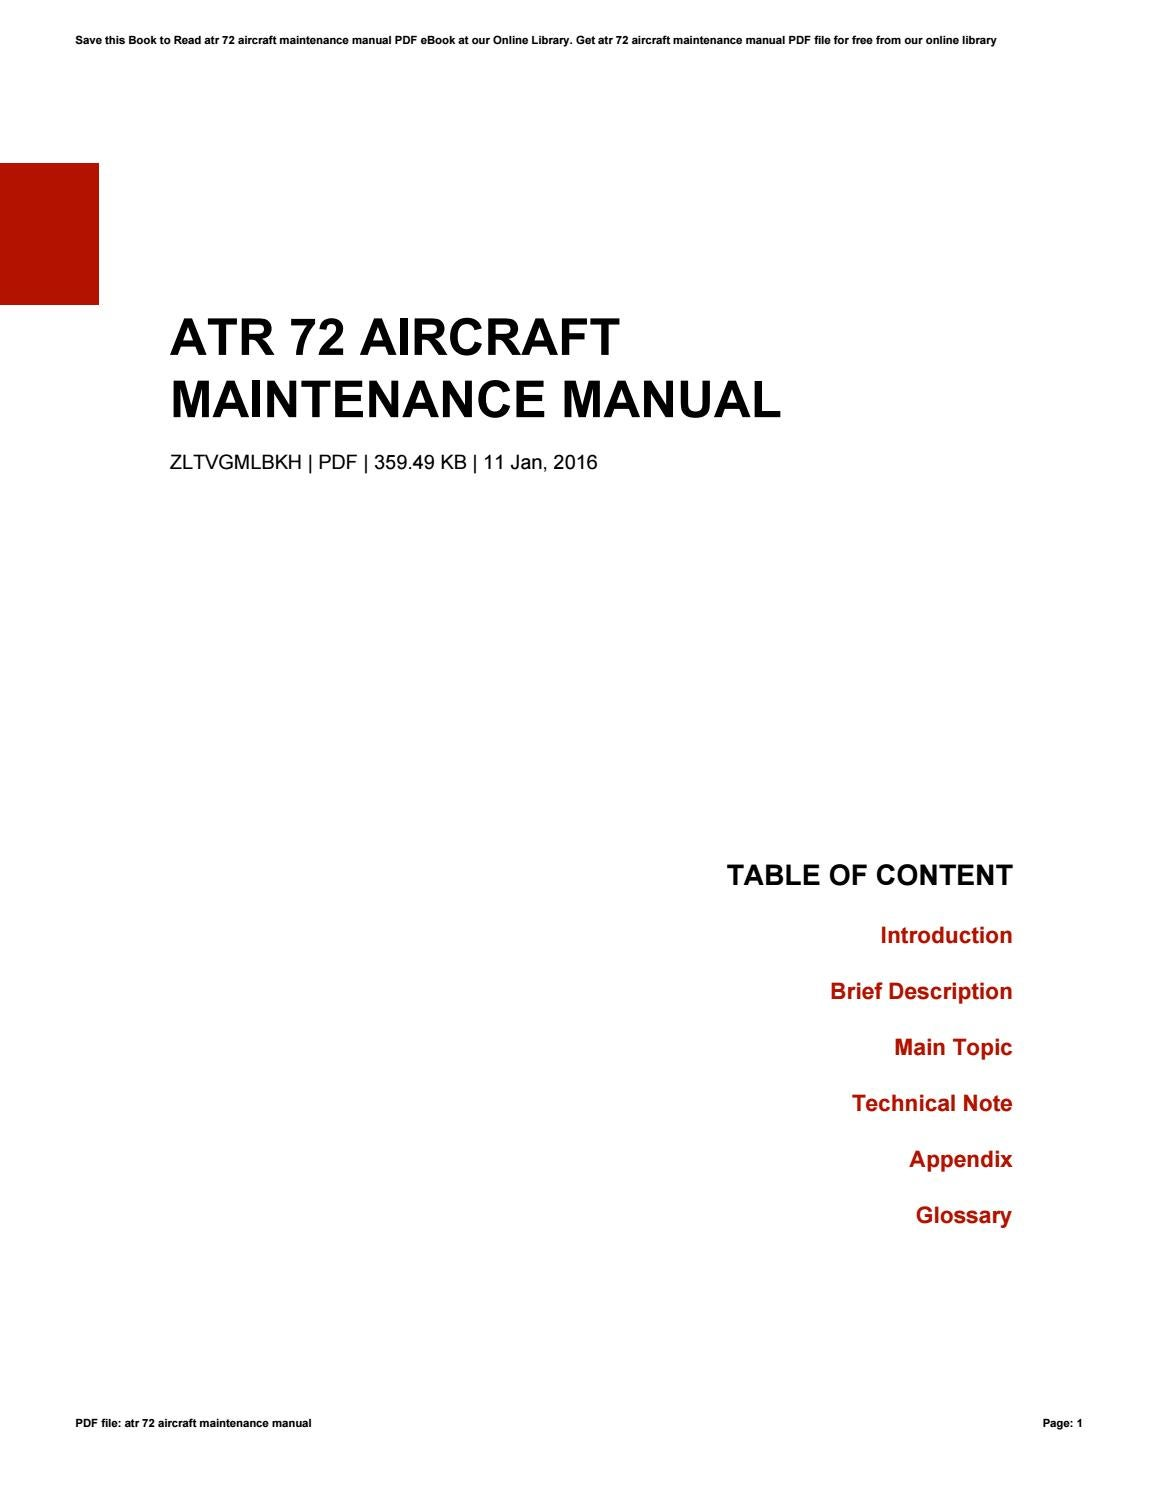 Aircraft Maintenance Manual B777 Auto Electrical Wiring Diagram Jeep Fuel Gauge For 1972 Related With